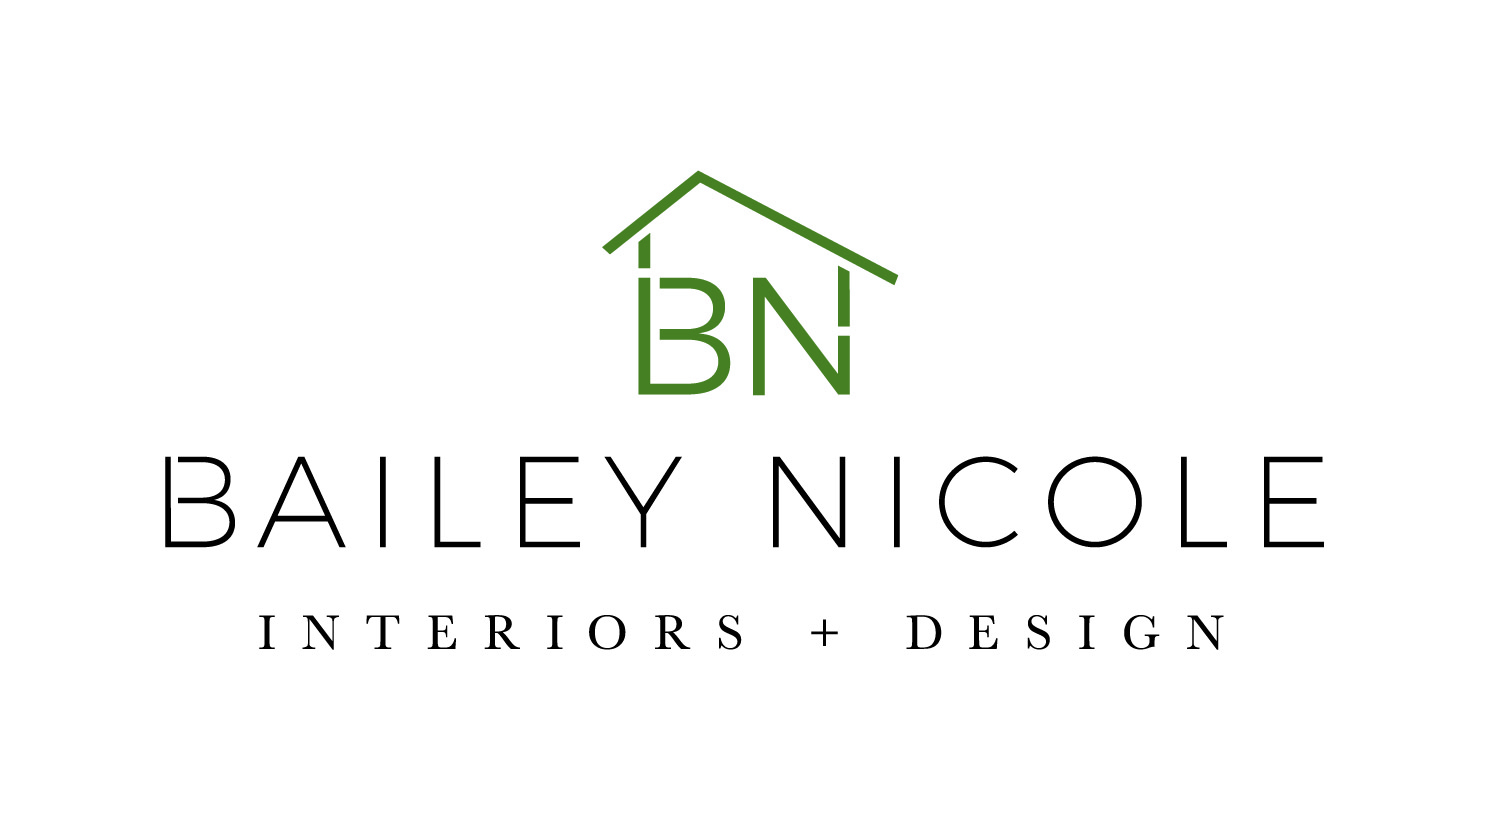 BAILEY NICOLE INTERIORS + DESIGN